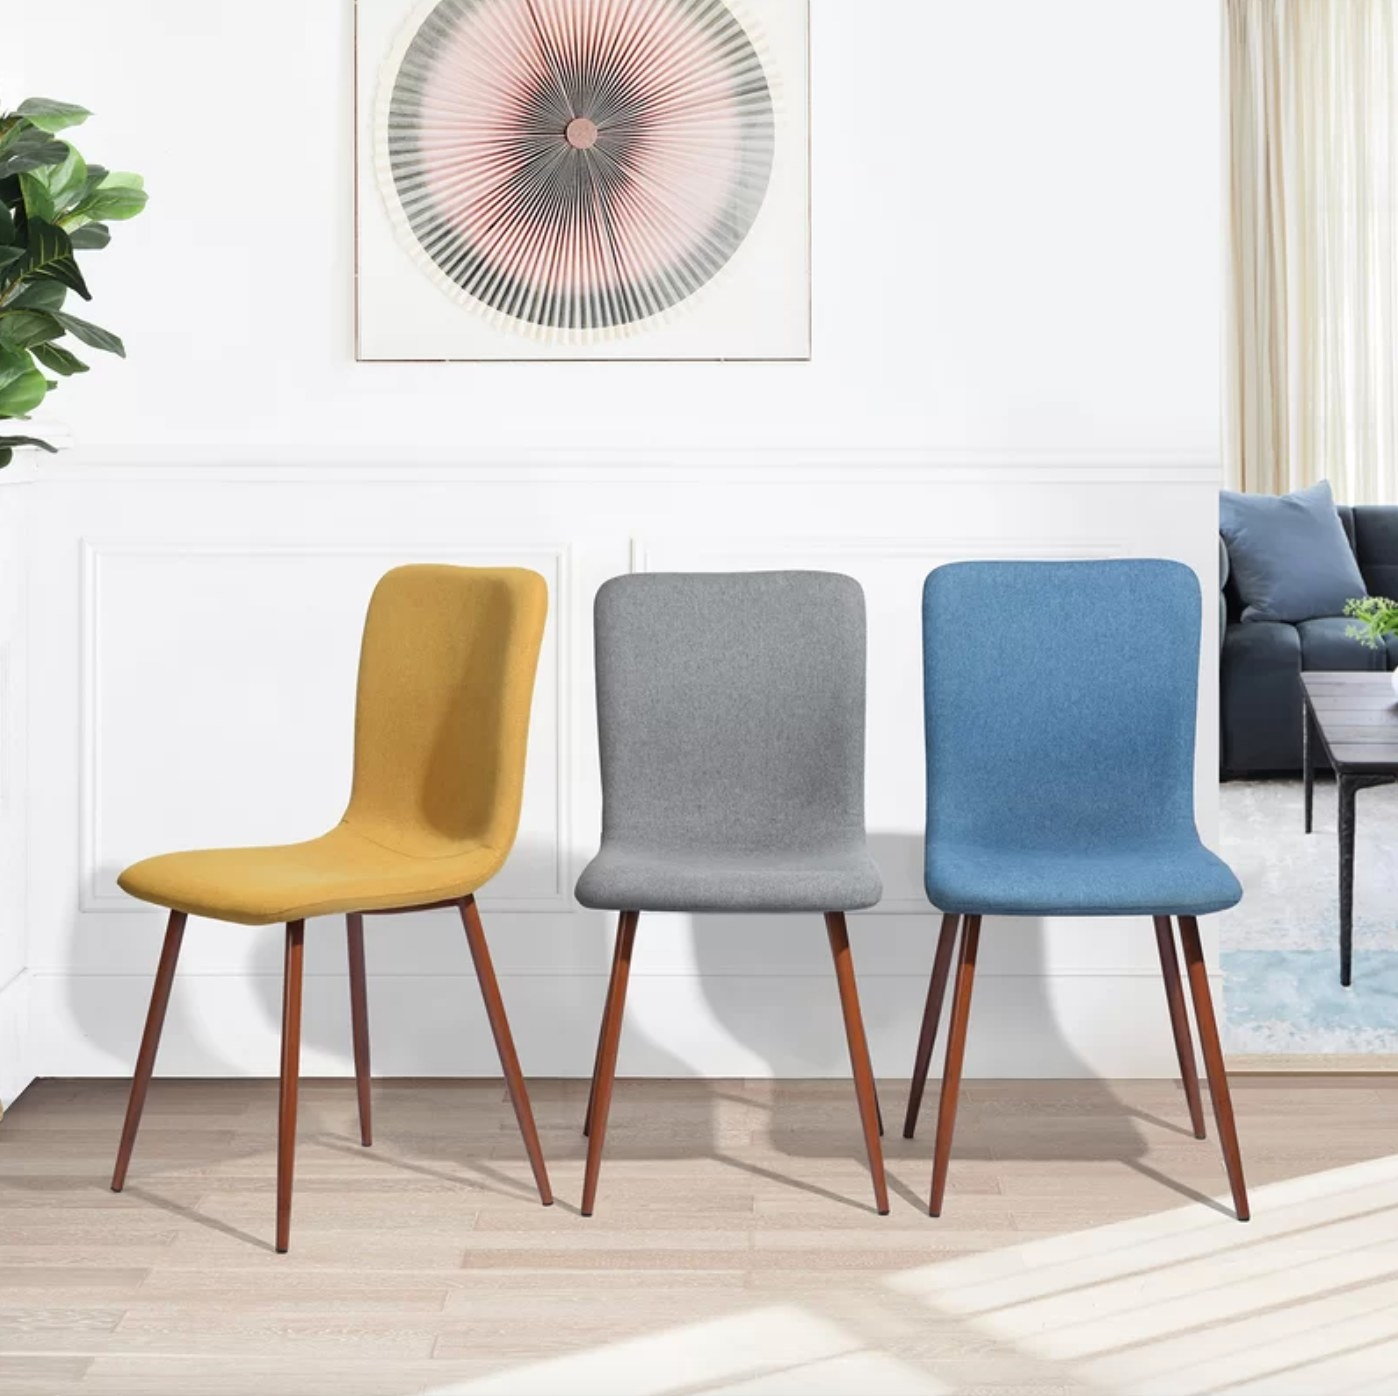 The set of four upholstered chairs in yellow